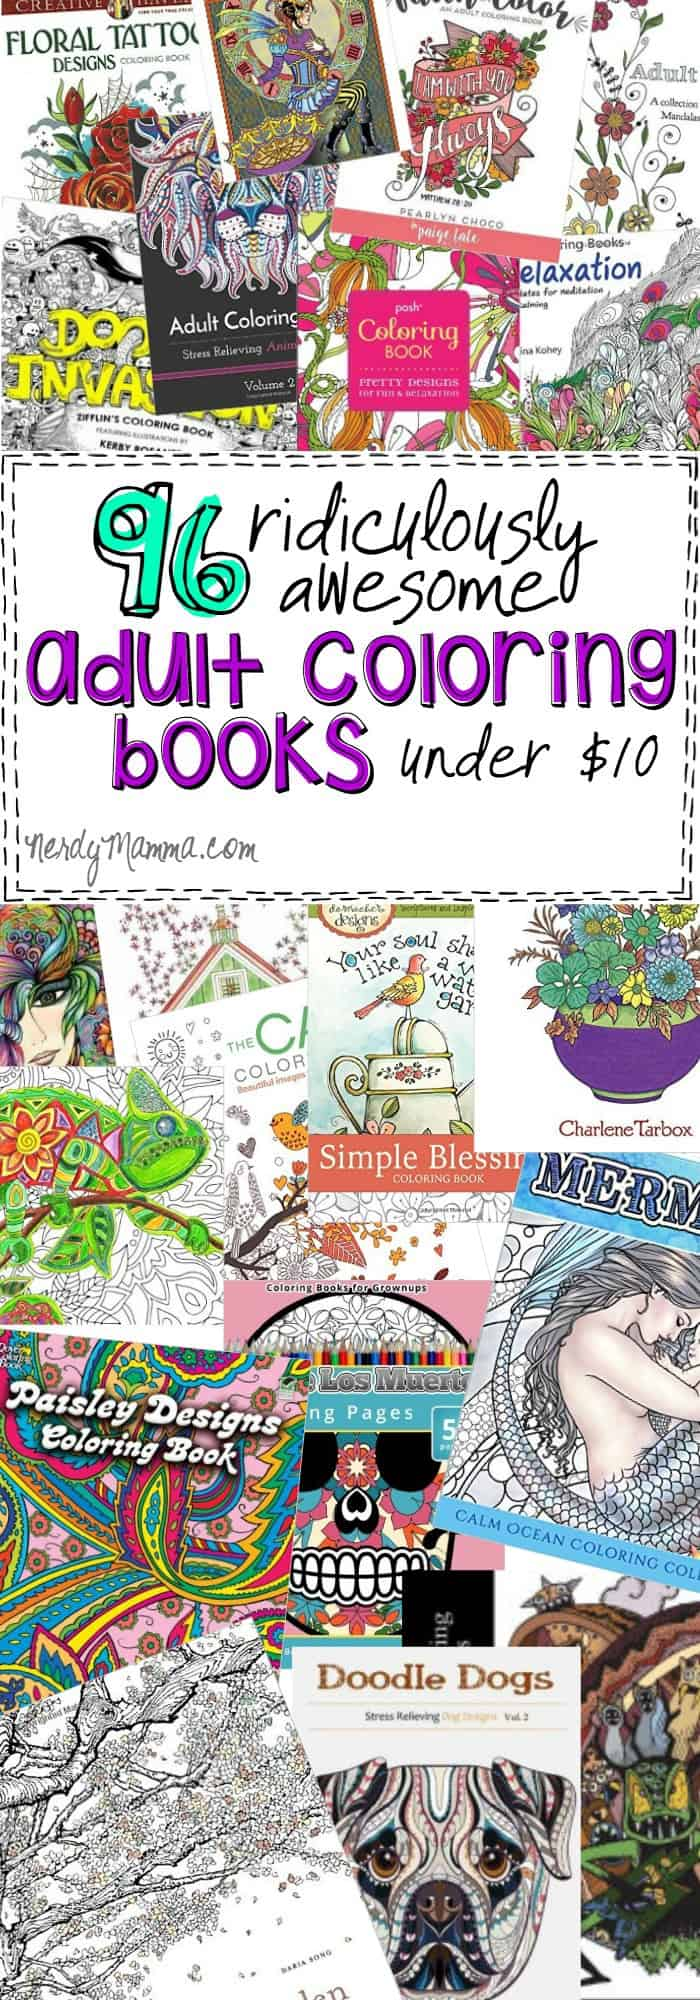 This list of 96 ridiculously awesome adult coloring books under $10 is just everything. I mean, seriously. There's a coloring book for EVERYONE on this list--and they're all cheap! LOVE!